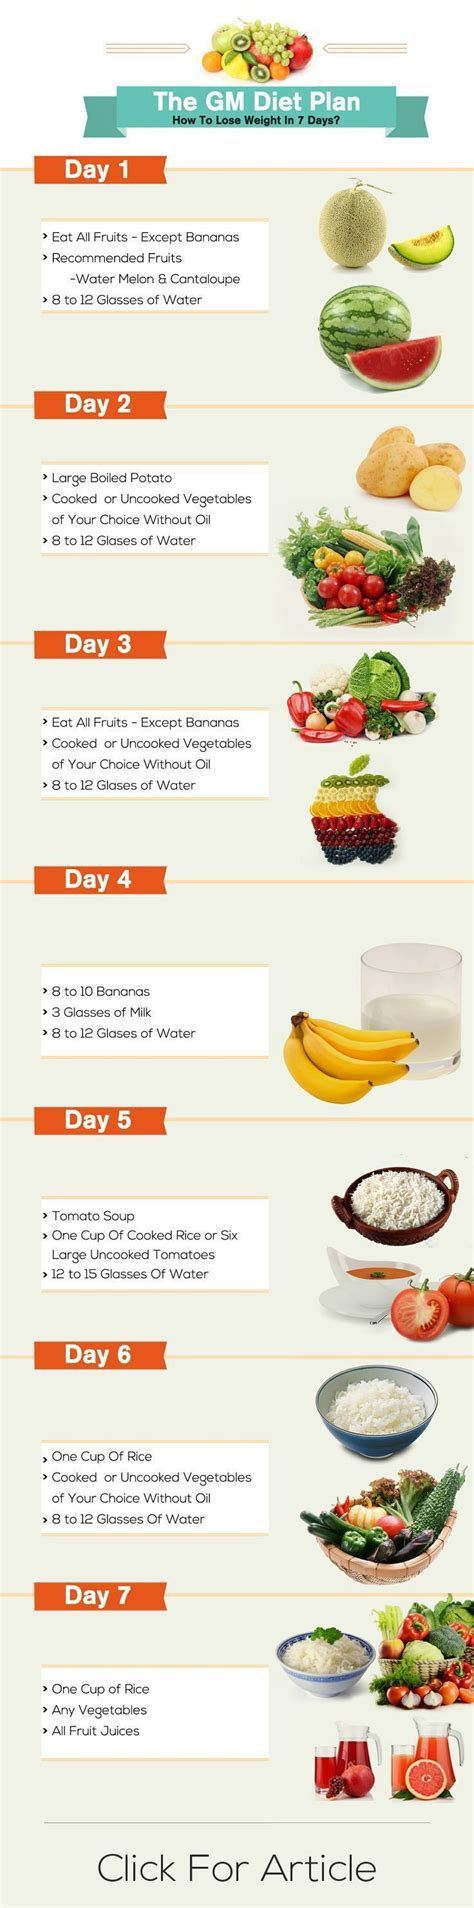 Eat When On Detox by Eat These Foods To Slim To Lose Weight Detox Plan